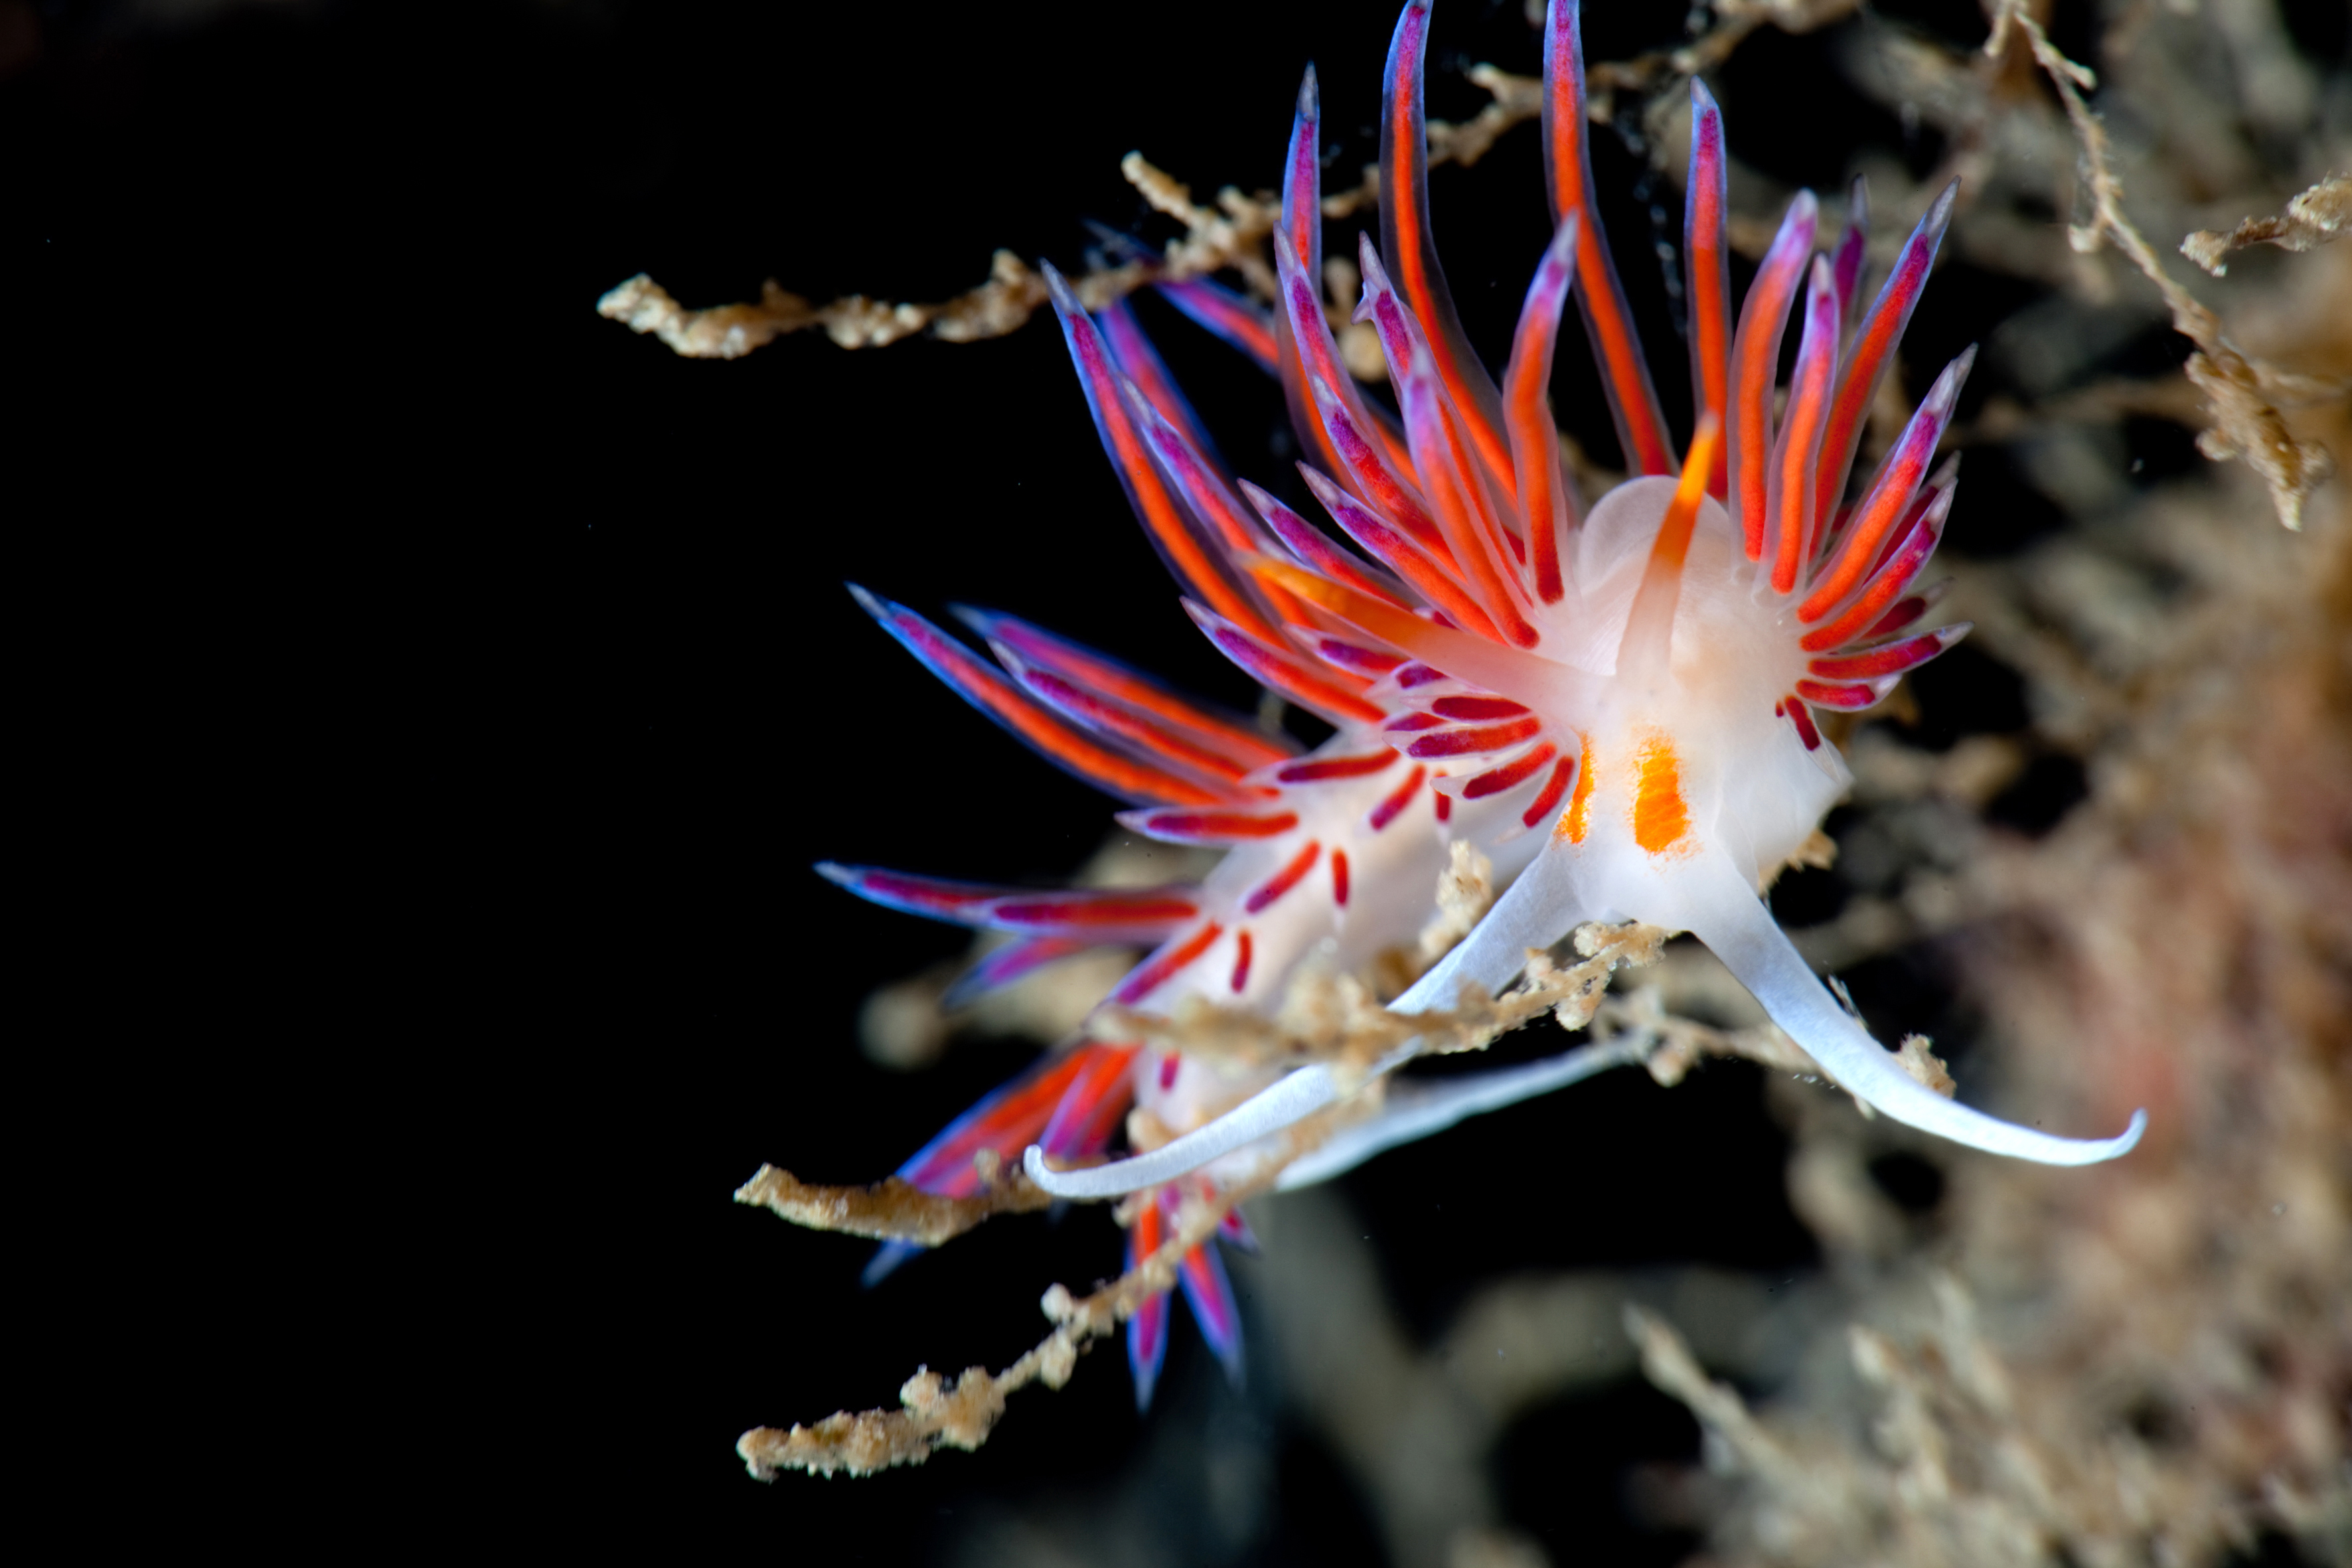 Grambonisi Deep combines rocky walls filled with diverse macro life and Neptune Grass on the bottom. This Cratena peregrina nudibranch is very common in the Mediterranean © Nicholas Samaras